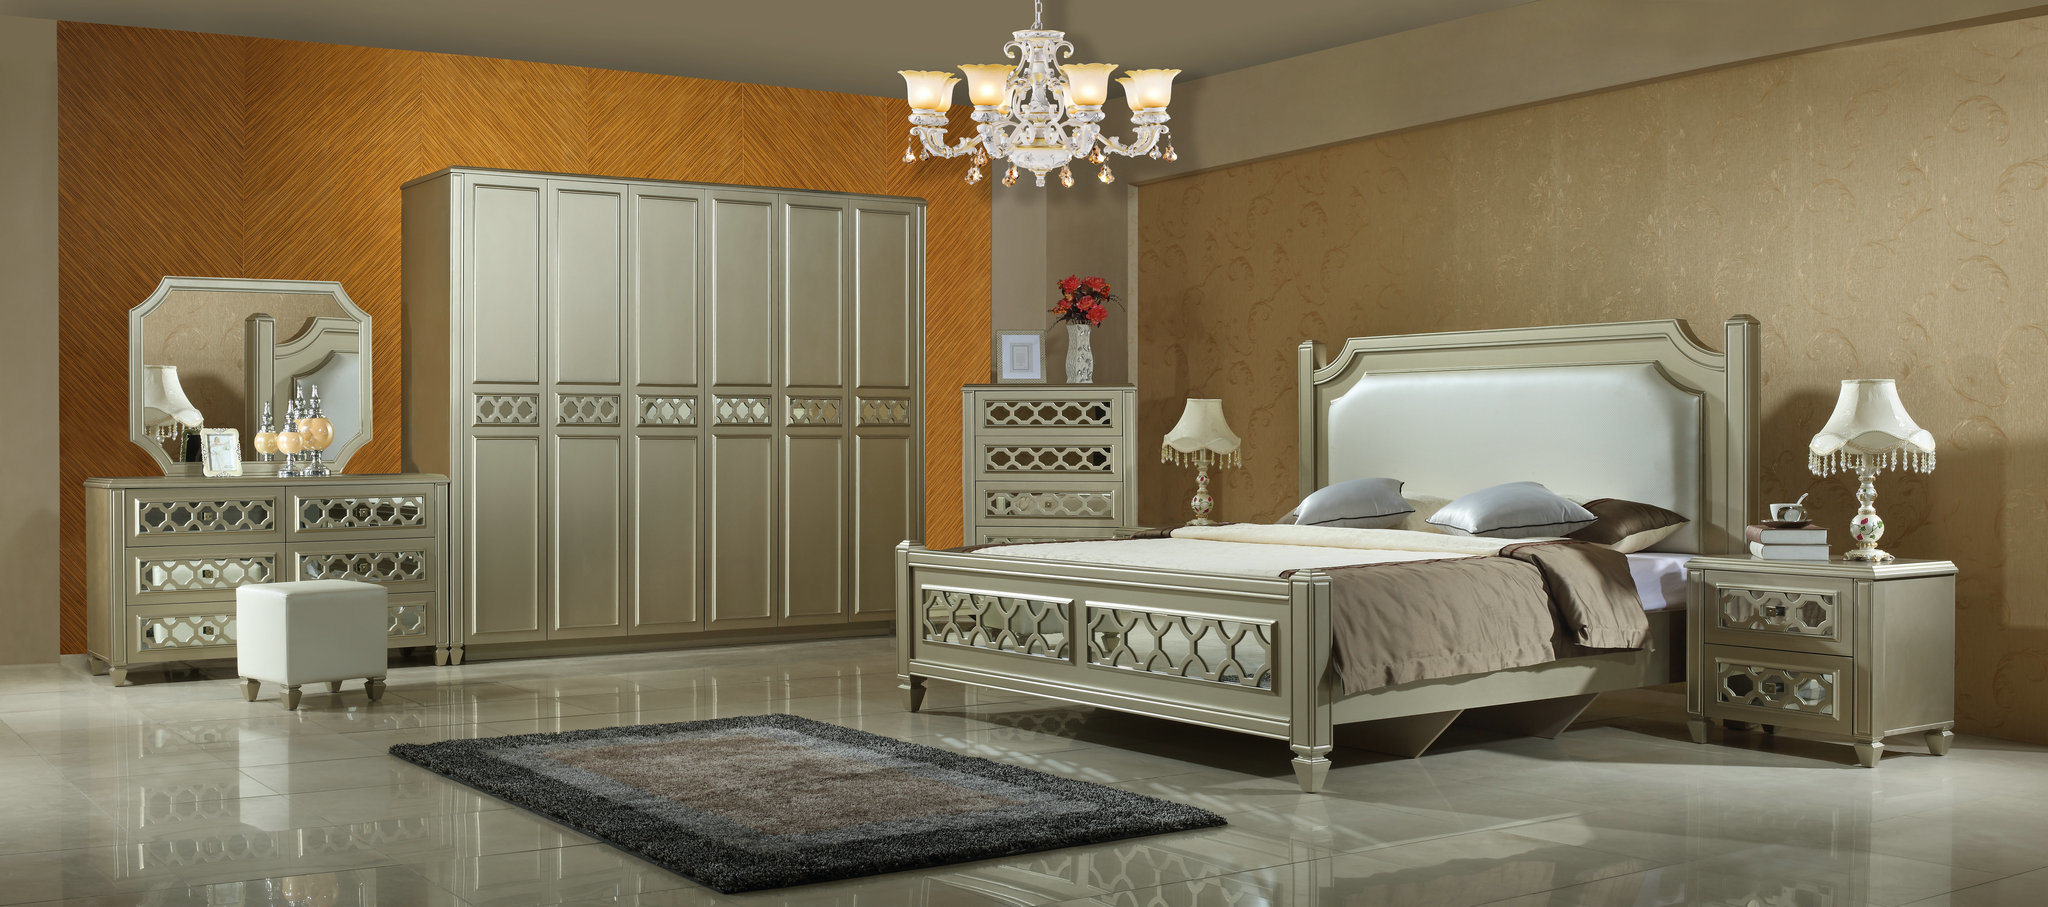 China Modern Mdf Bedroom Furniture With Mirror Photos Pictures Made In China Com